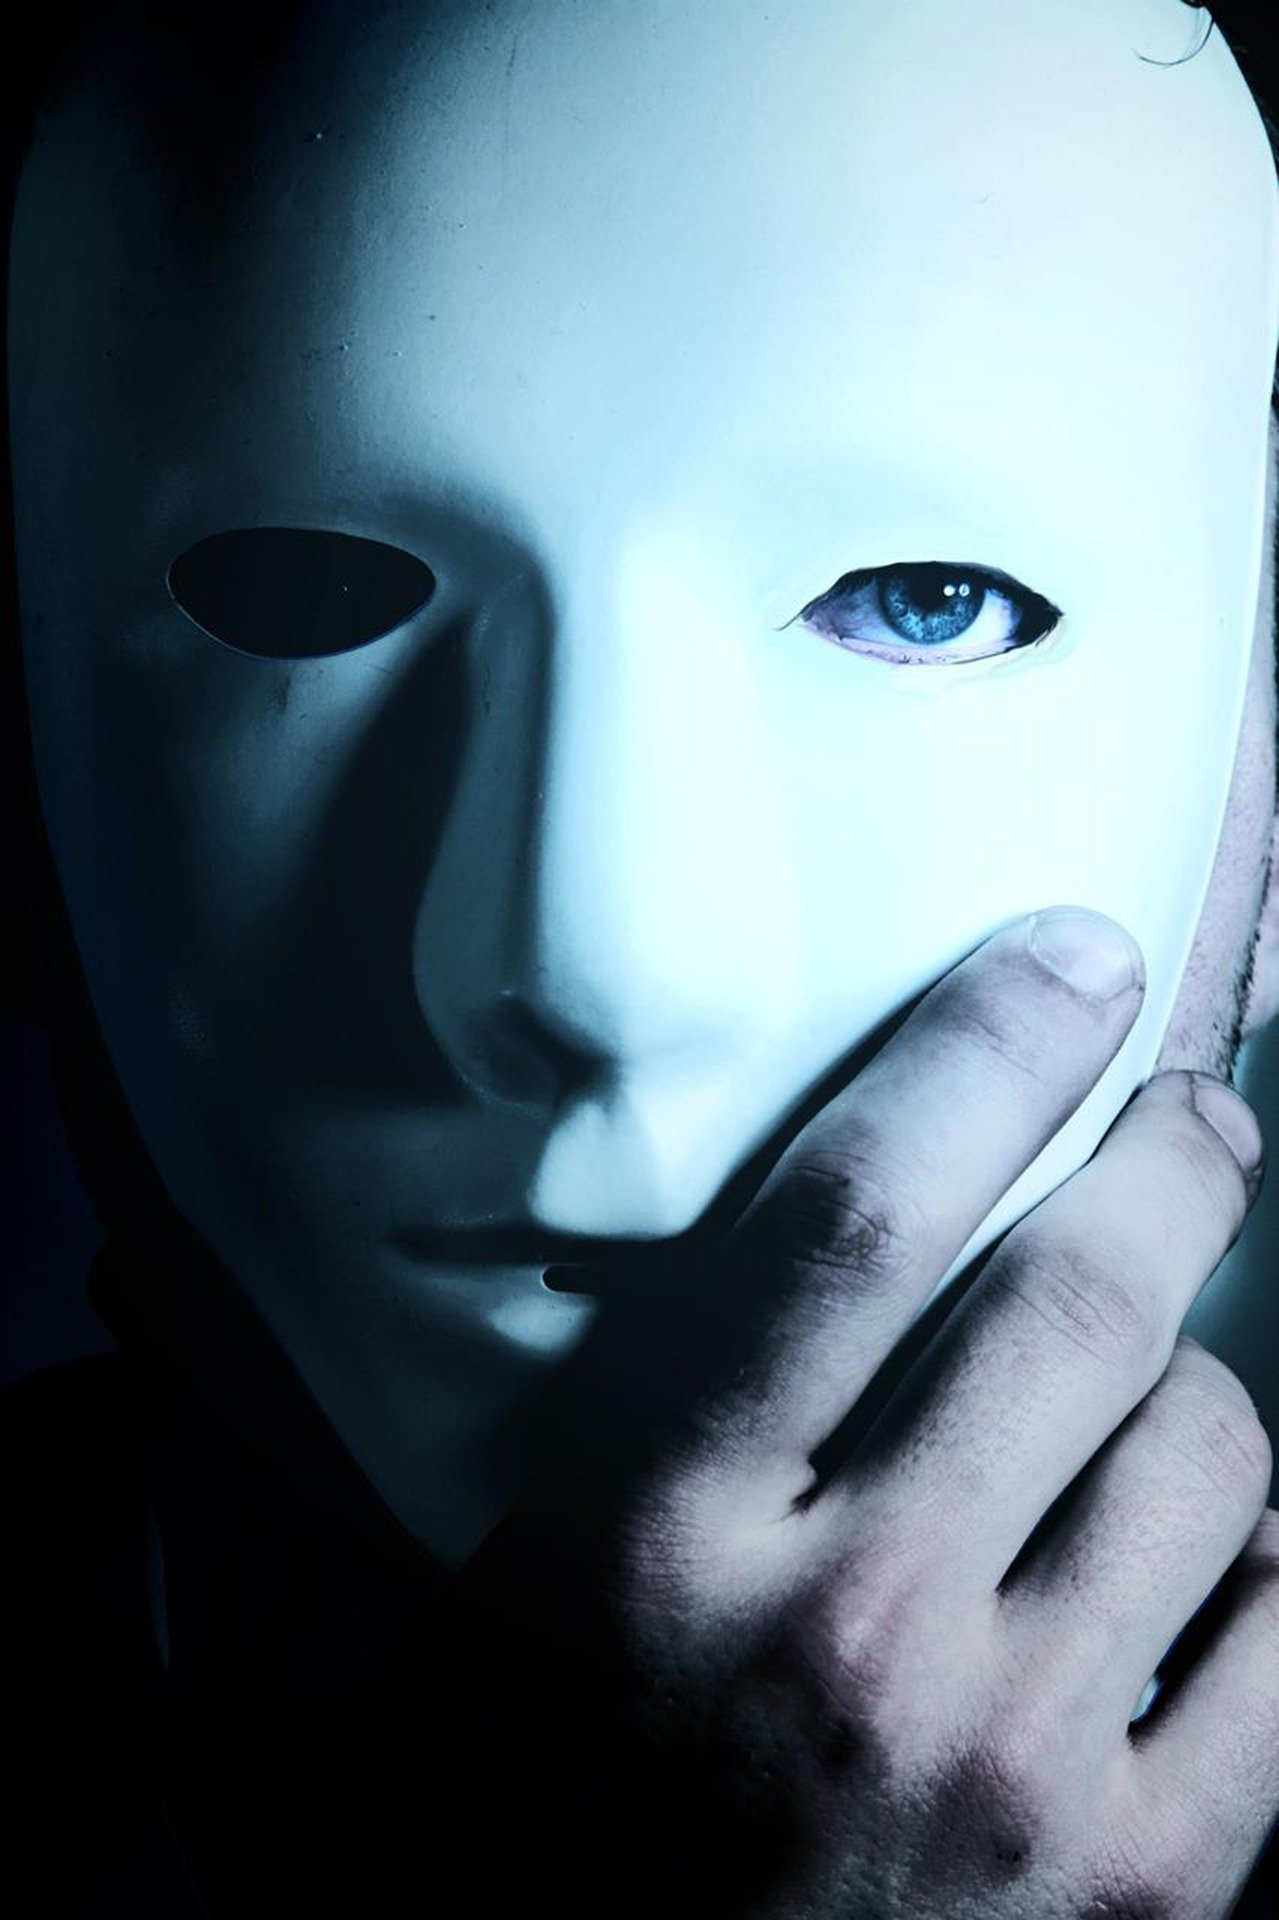 Pictured - A man with blue eyes wearing a mask with his hand holding it | Source: Pixabay